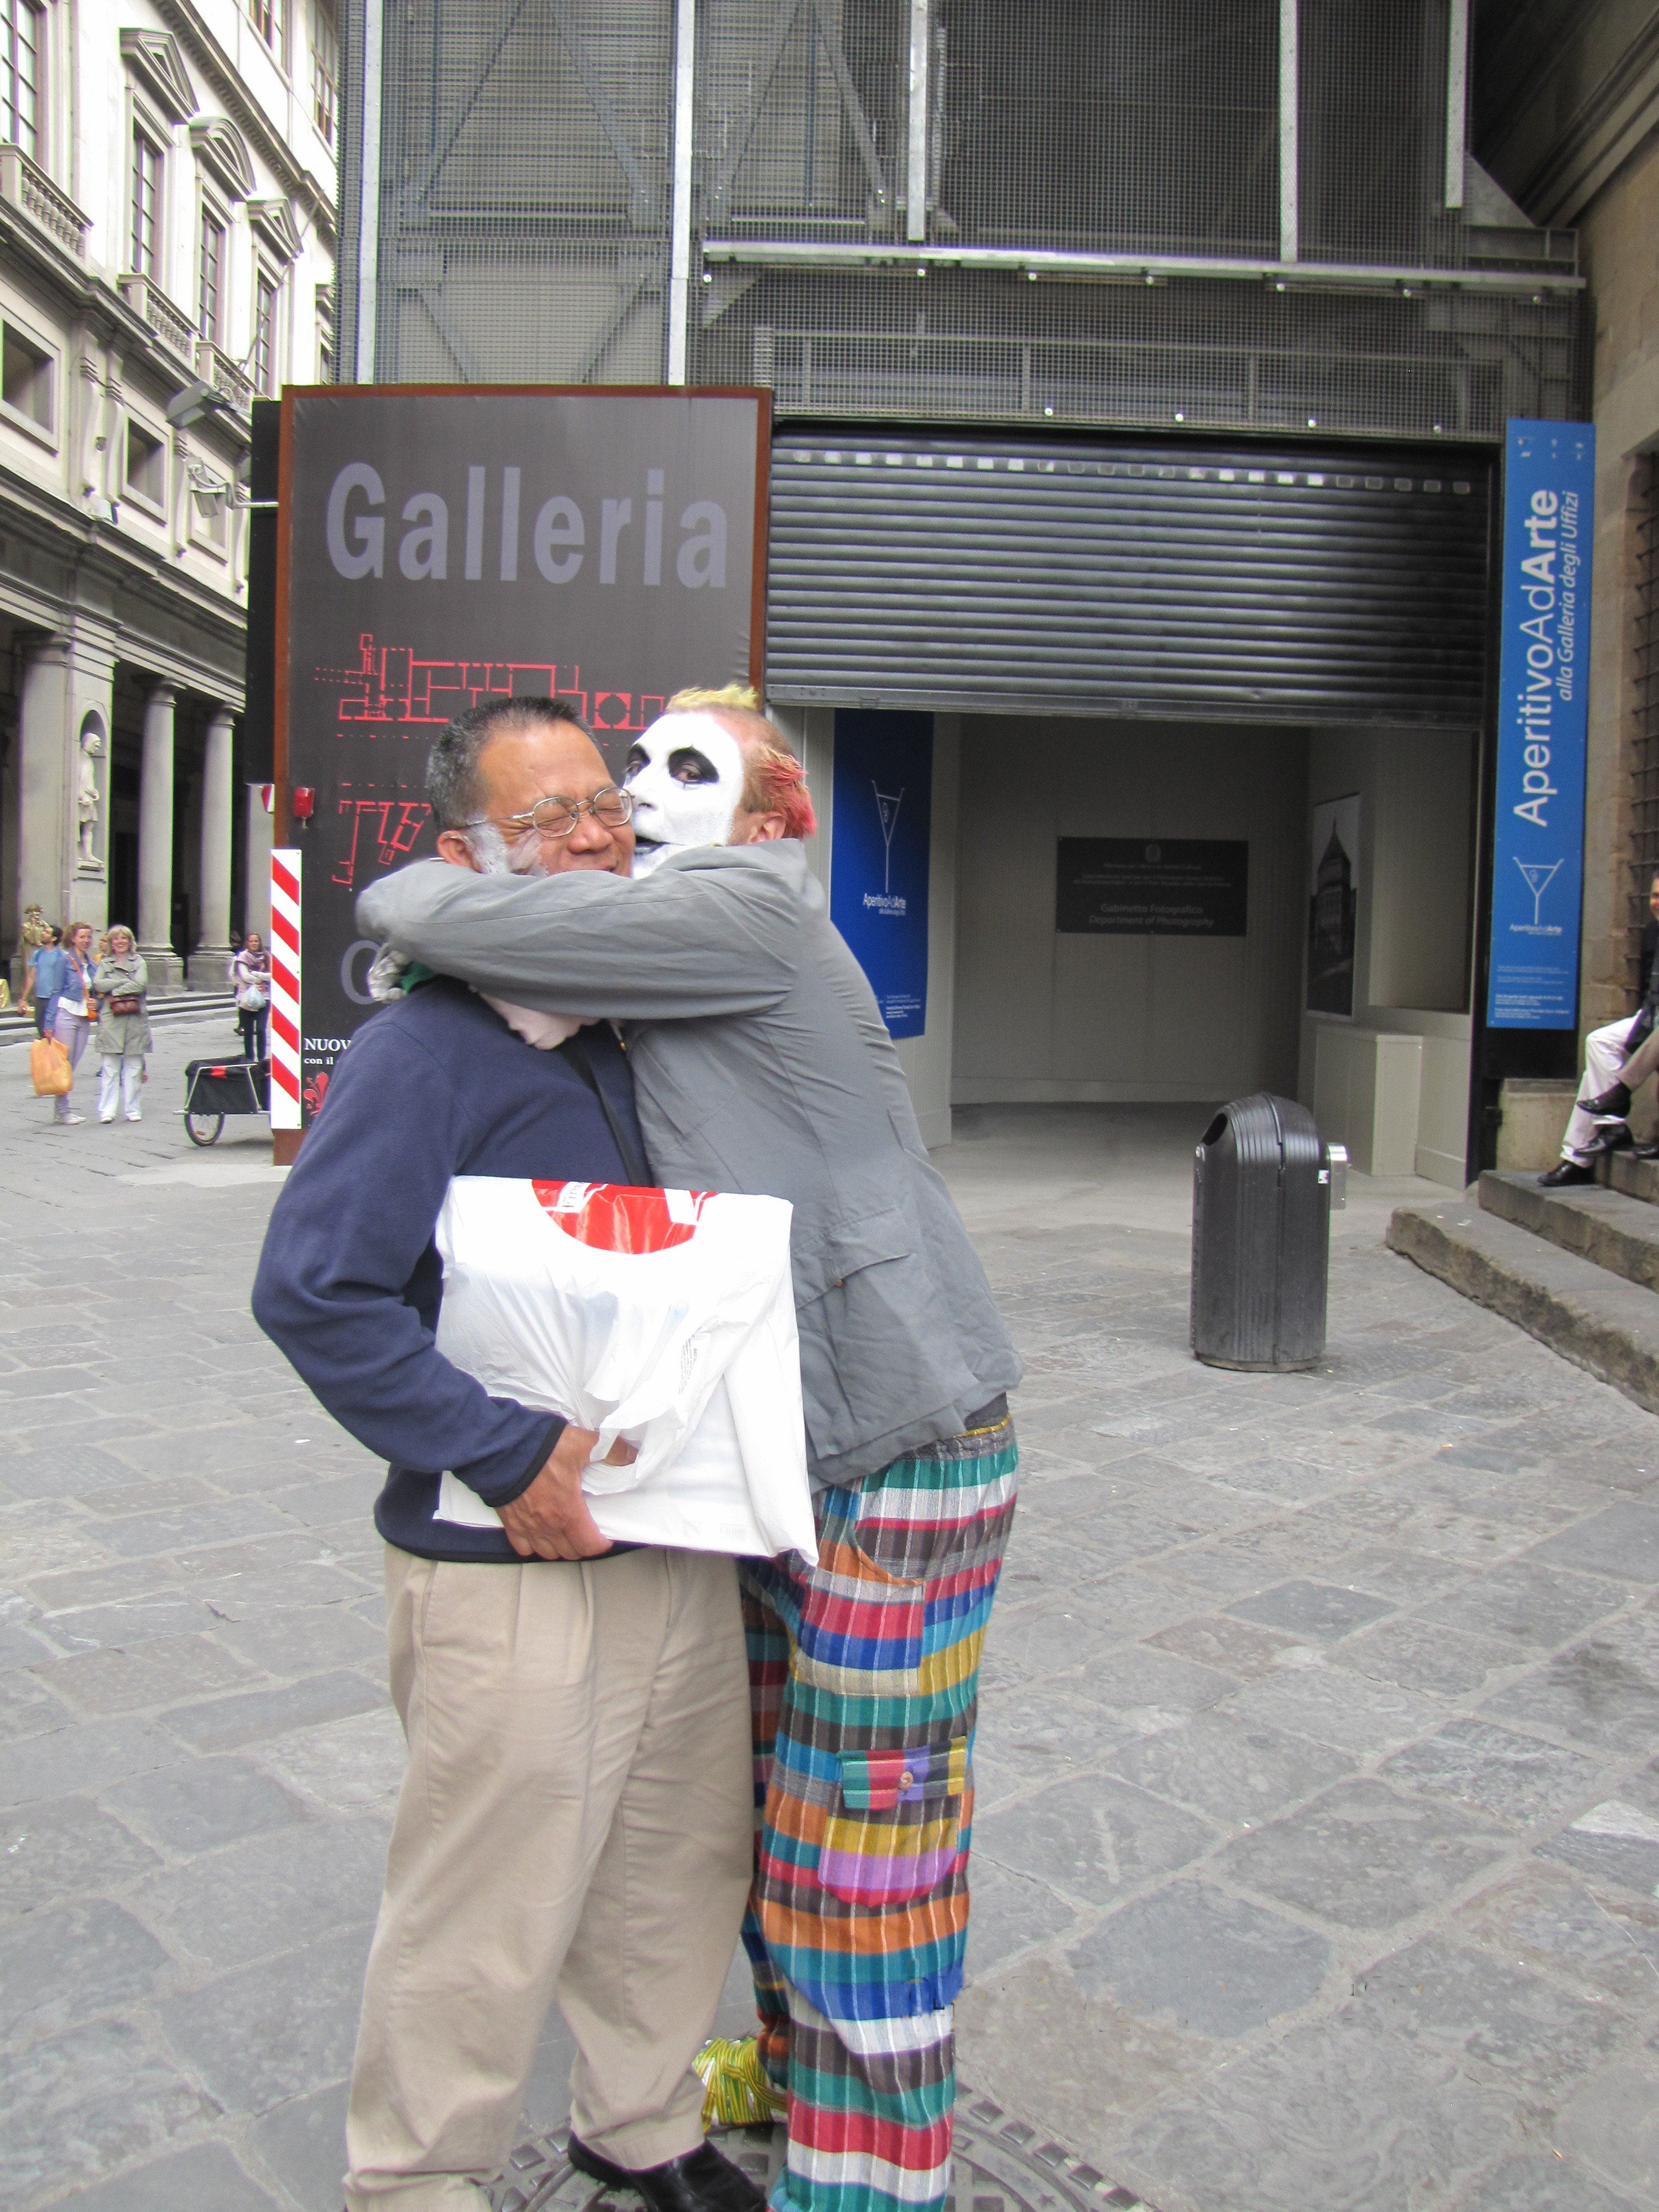 'Attacked' by clown outside the Uffizi gallery